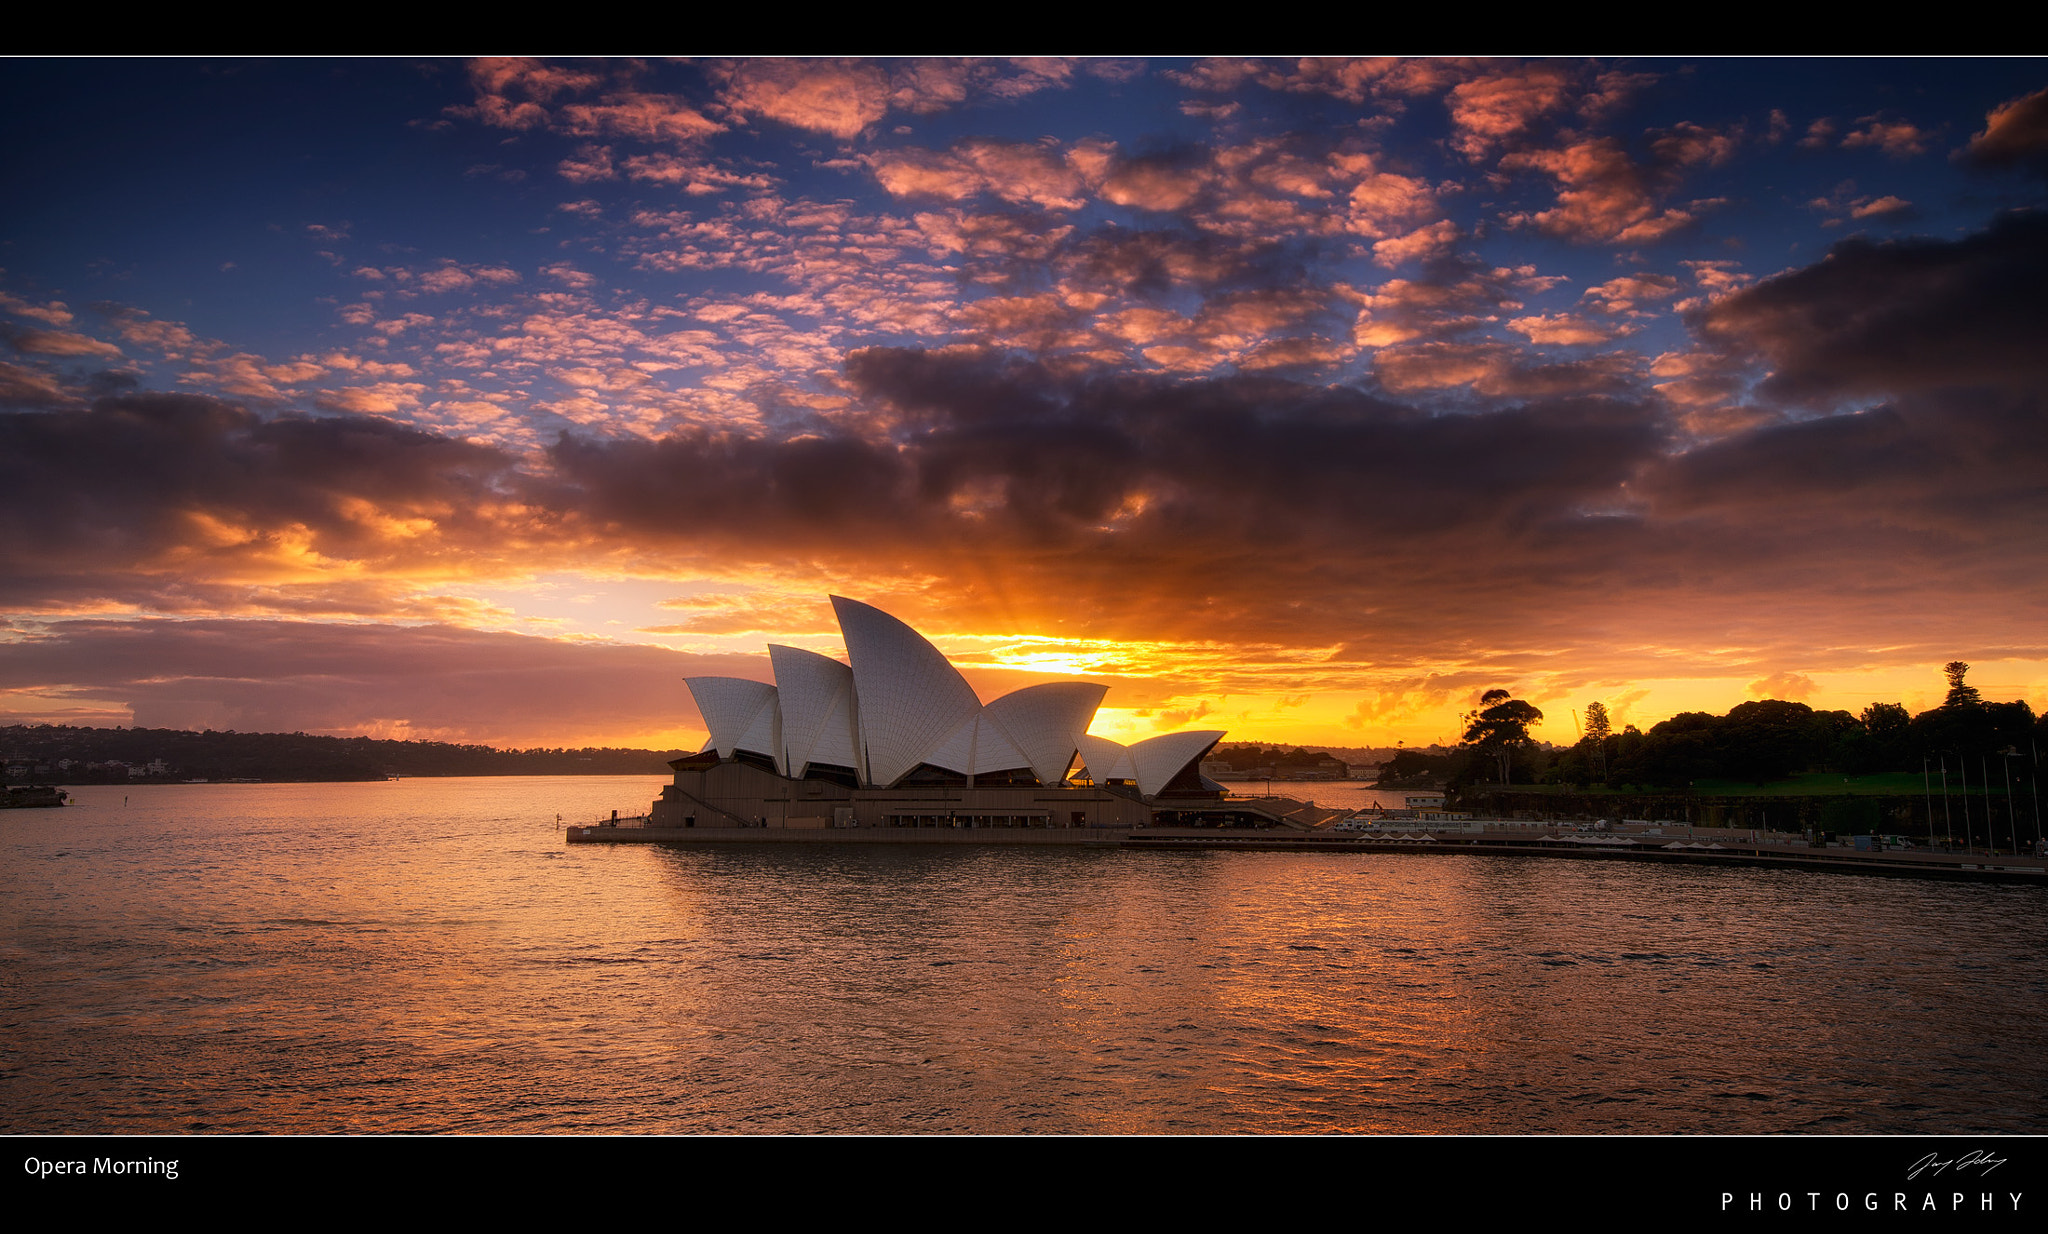 Photograph Opera Morning by Jay Daley on 500px